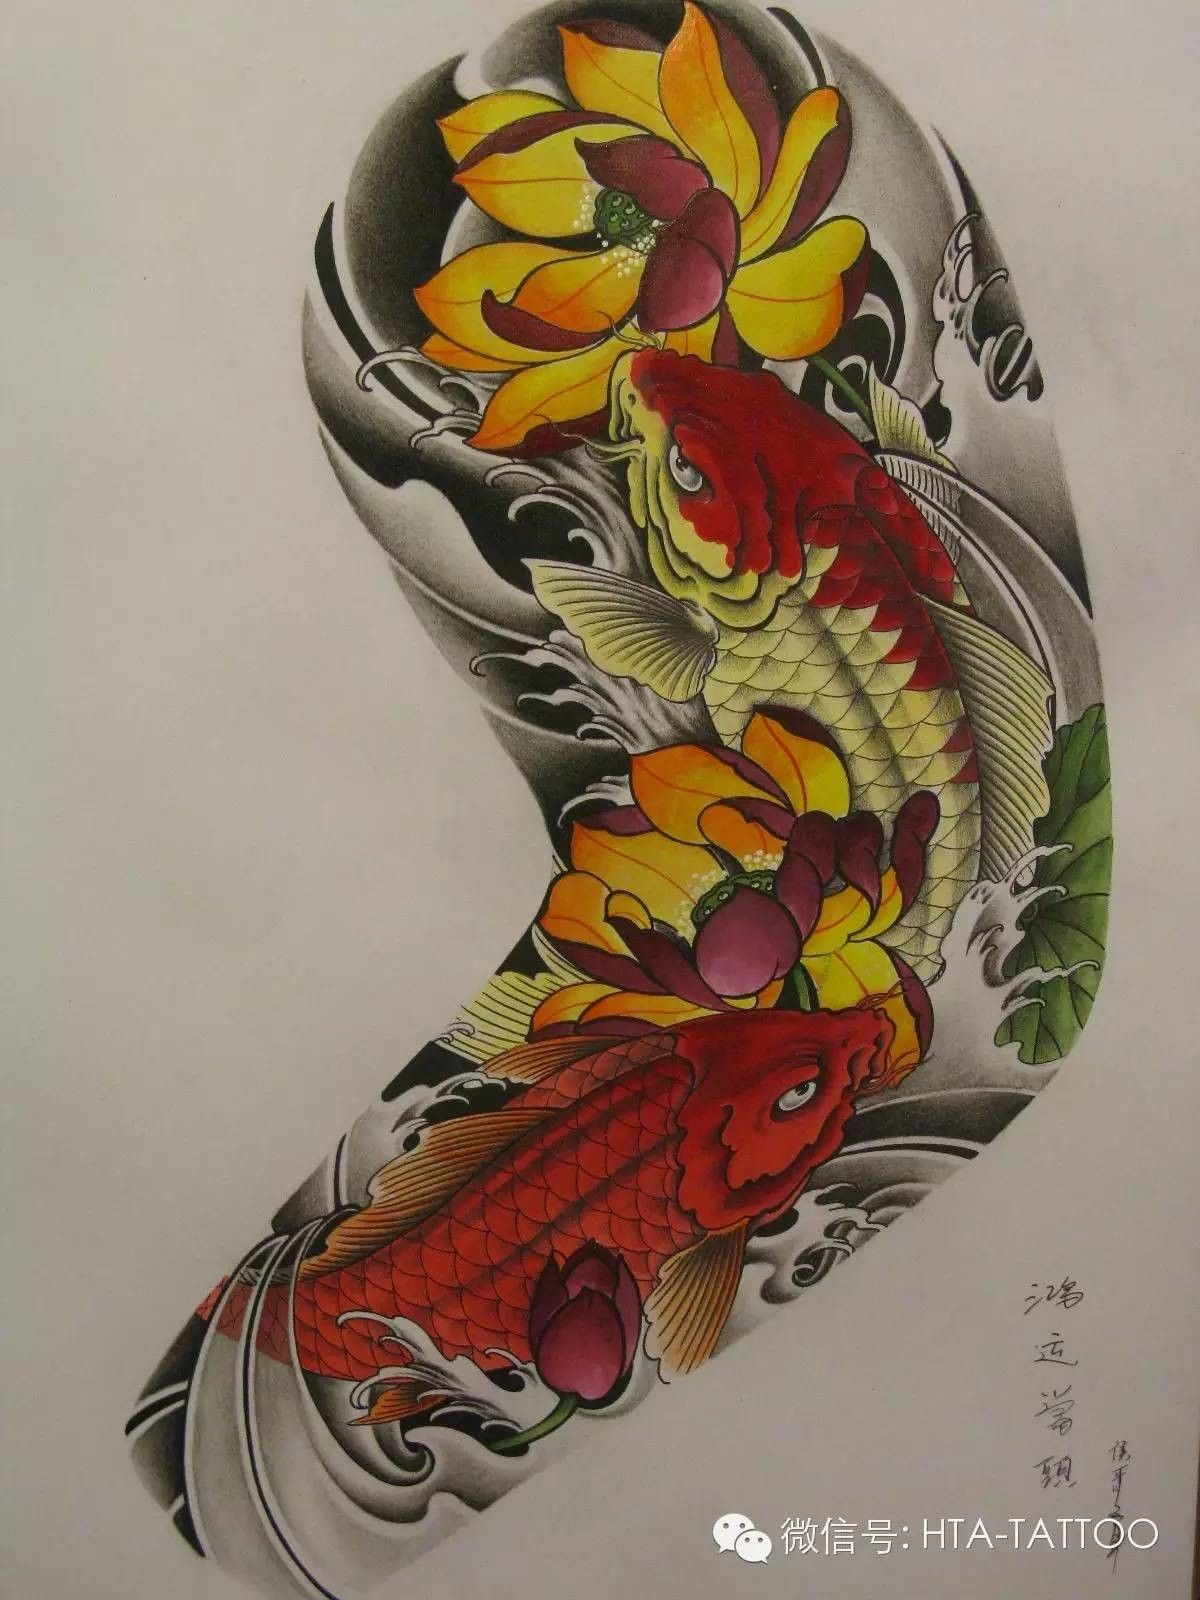 Pin by tao on traditional pinterest koi tattoo and tattoo koi fish tattoo fish tattoos koi dragon tattoo lotus tattoo arm tattoo flower tattoos tatoos japanese sleeve tattoos japanese tattoo designs izmirmasajfo Images